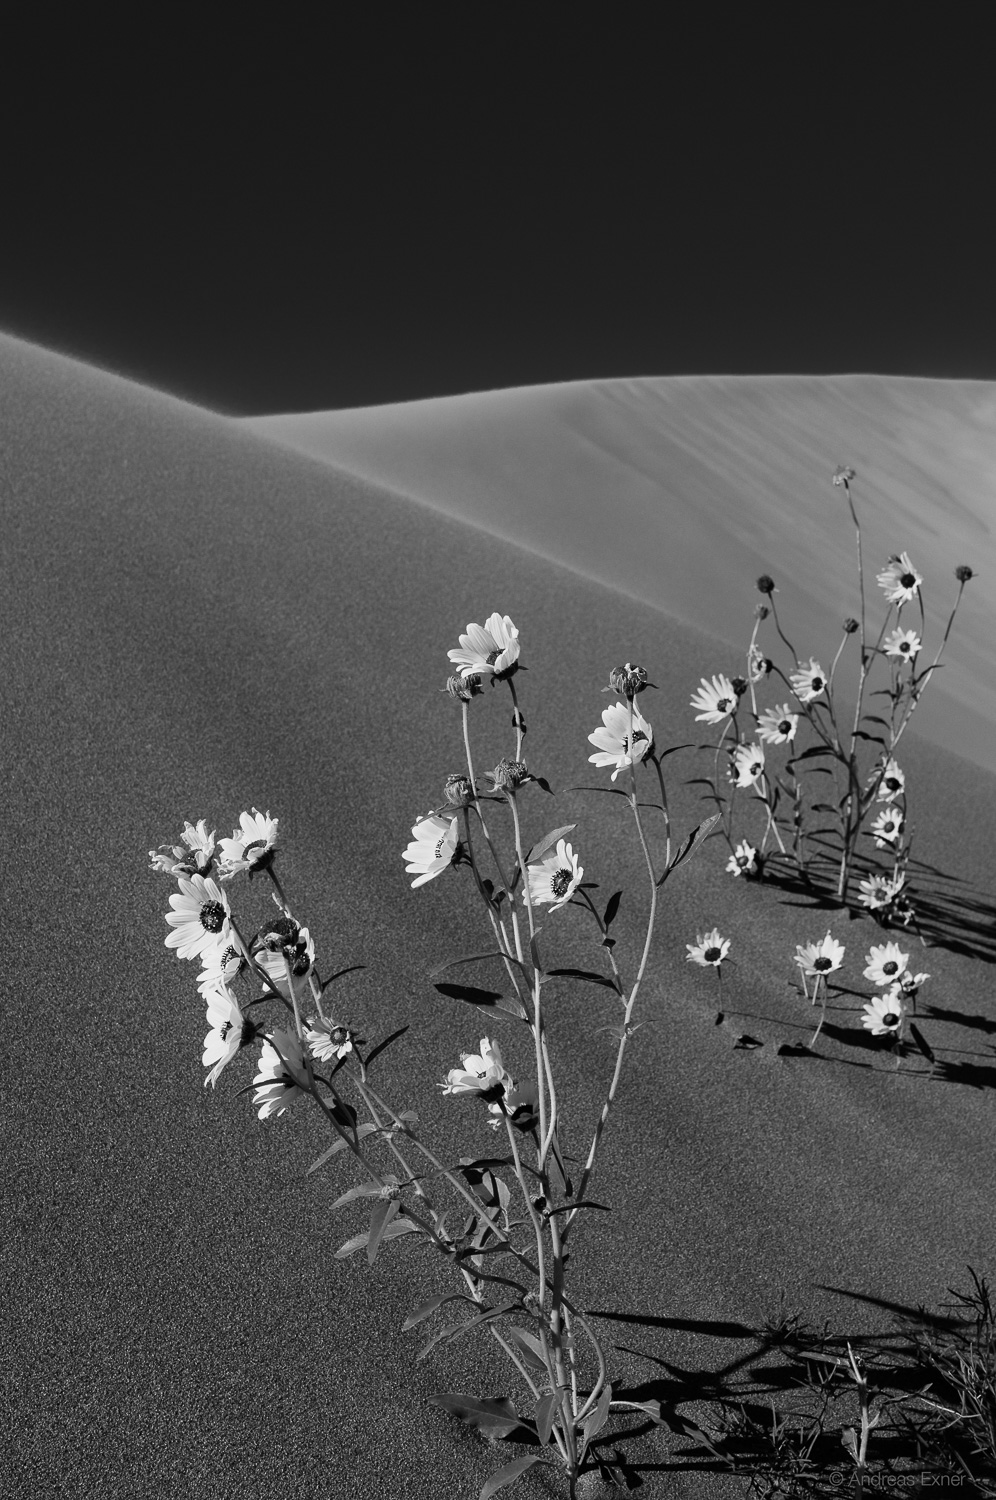 Living on the edge - Great Sand Dunes National Park, August 2014  Nikon D300s, Nikkor 24-120mm / f4, at 48 mm, 1/750s, f8, ISO200